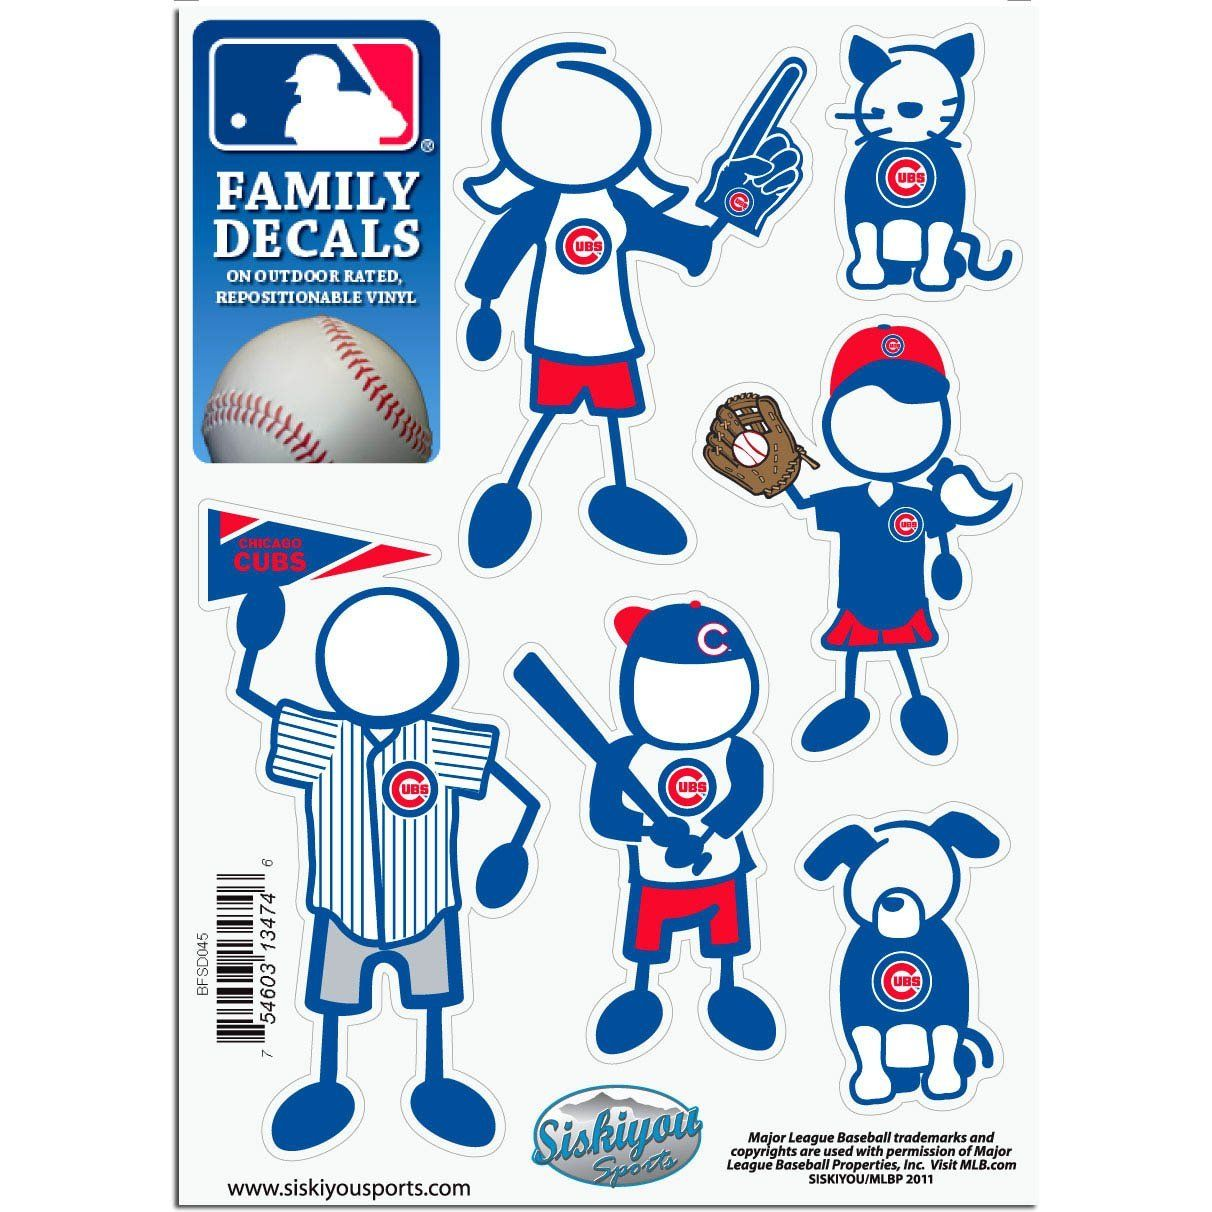 Major League Baseball Family Car Decals As Low As 5 72 Reg 24 07 Becomeacouponqueen Com Family Decals Family Car Decals Mlb Chicago Cubs [ 1212 x 1212 Pixel ]